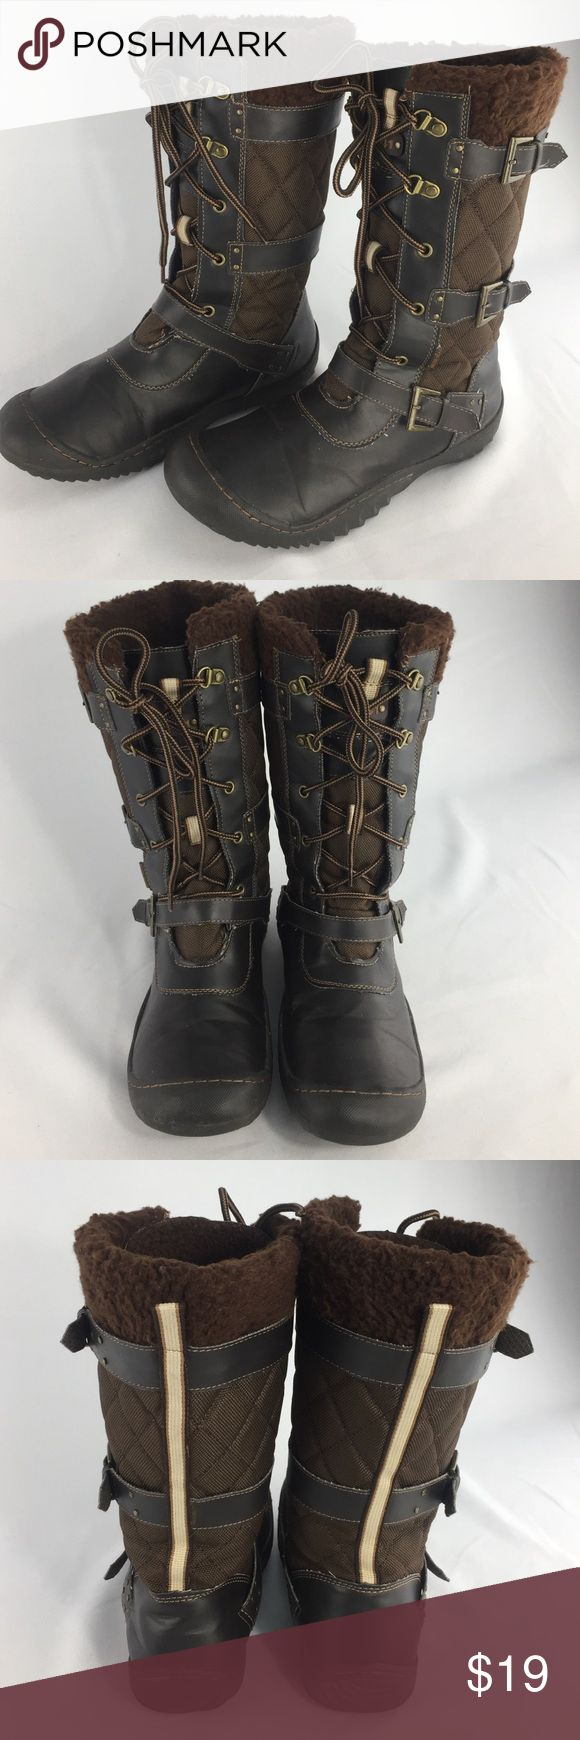 JEEP Engineered Traction Boots! JEEP Engineered Traction Boots! Style J-41. Vegan leather lace up boots. size 9m. Jeep Shoes Winter & Rain Boots